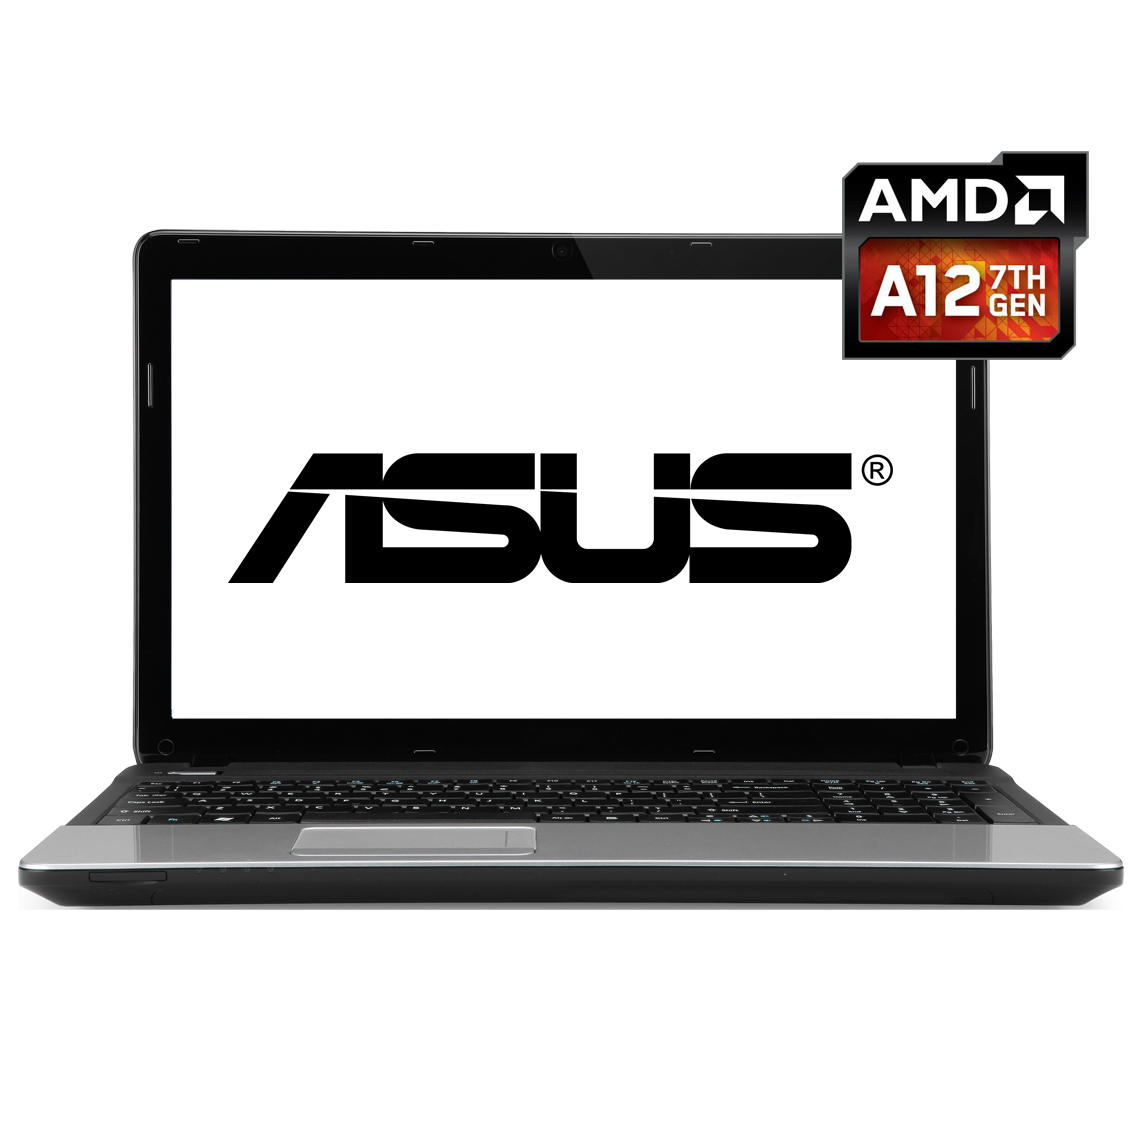 ASUS - 15 inch AMD A12